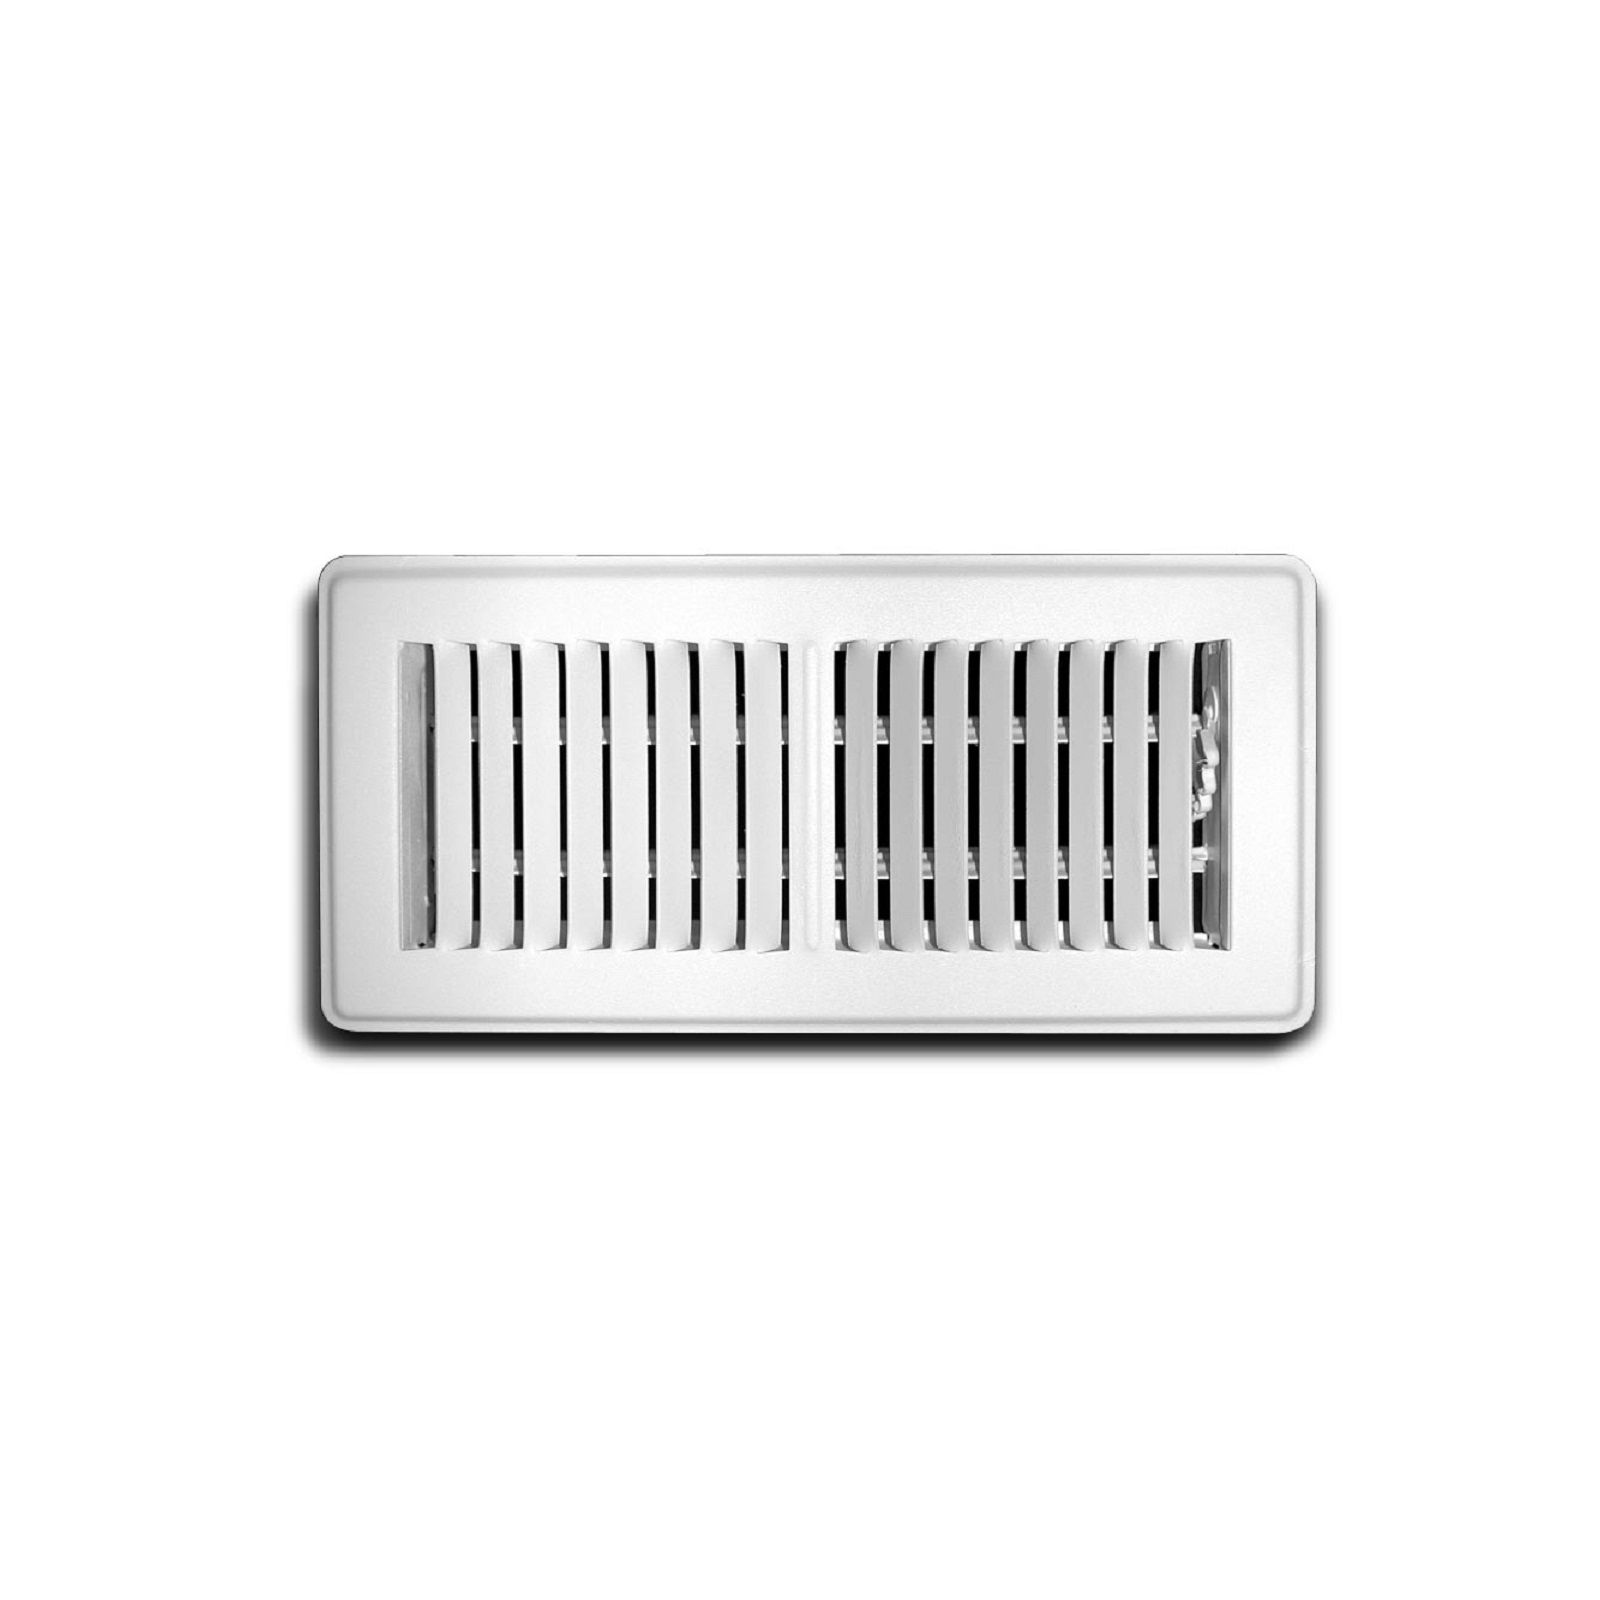 "TRUaire 150MW 06X14 - Steel Stamped Face Floor Diffuser, White, 06"" X 14"""